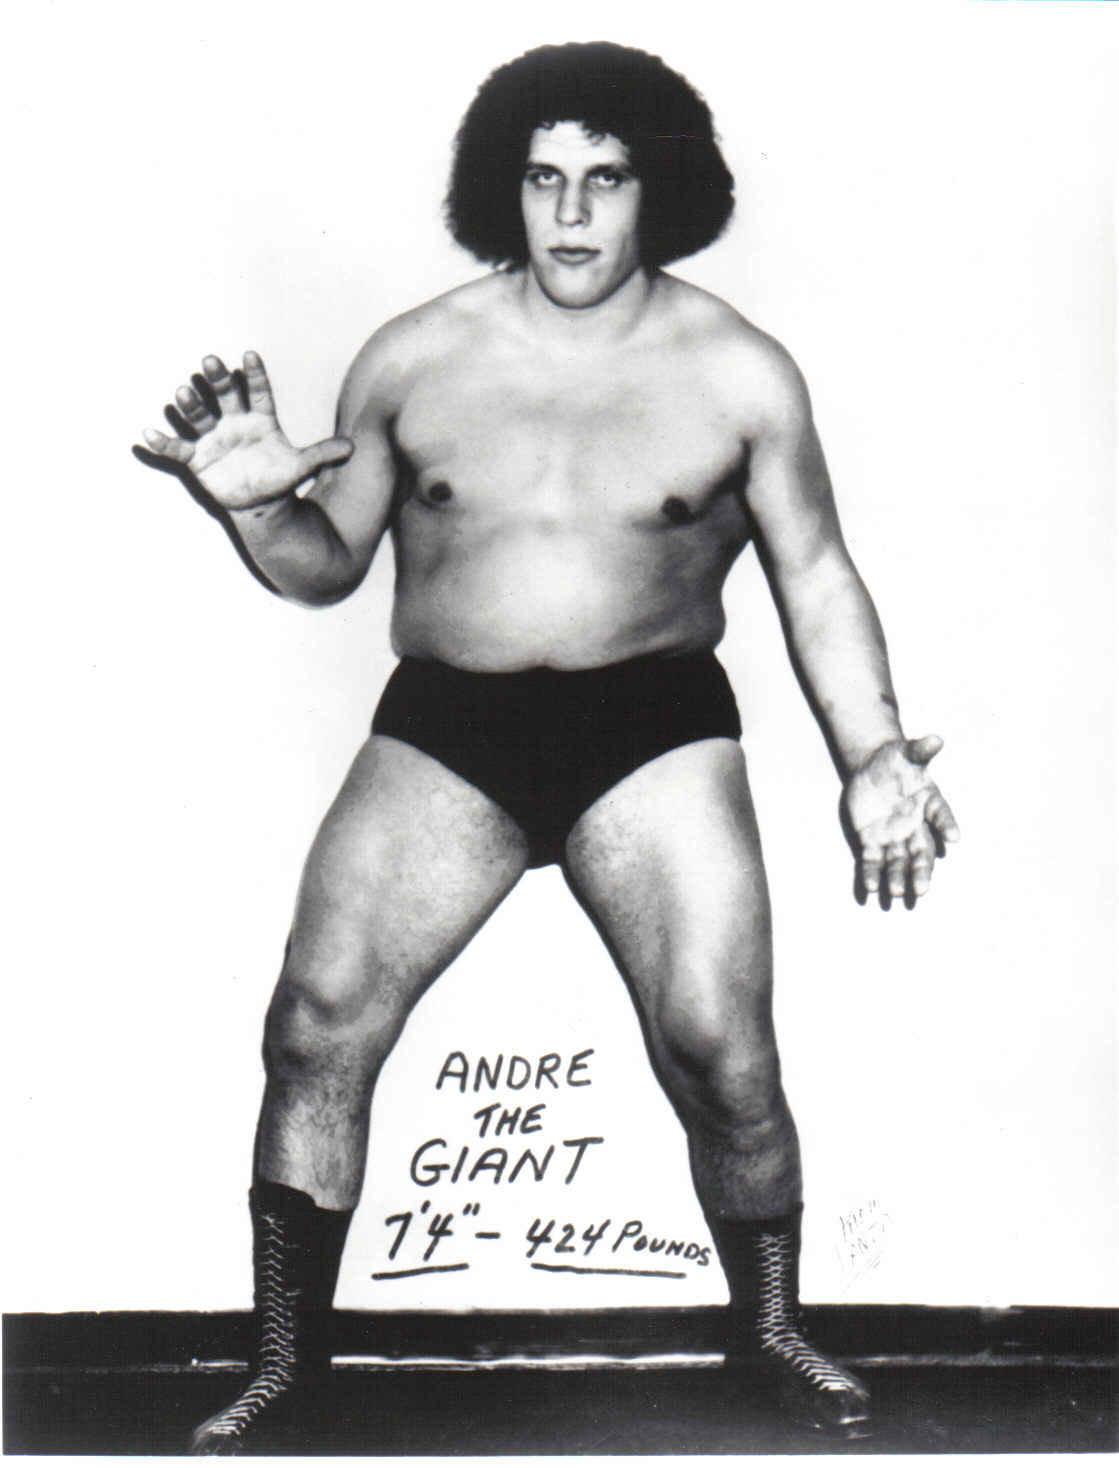 andre The giant HD Wallpaper